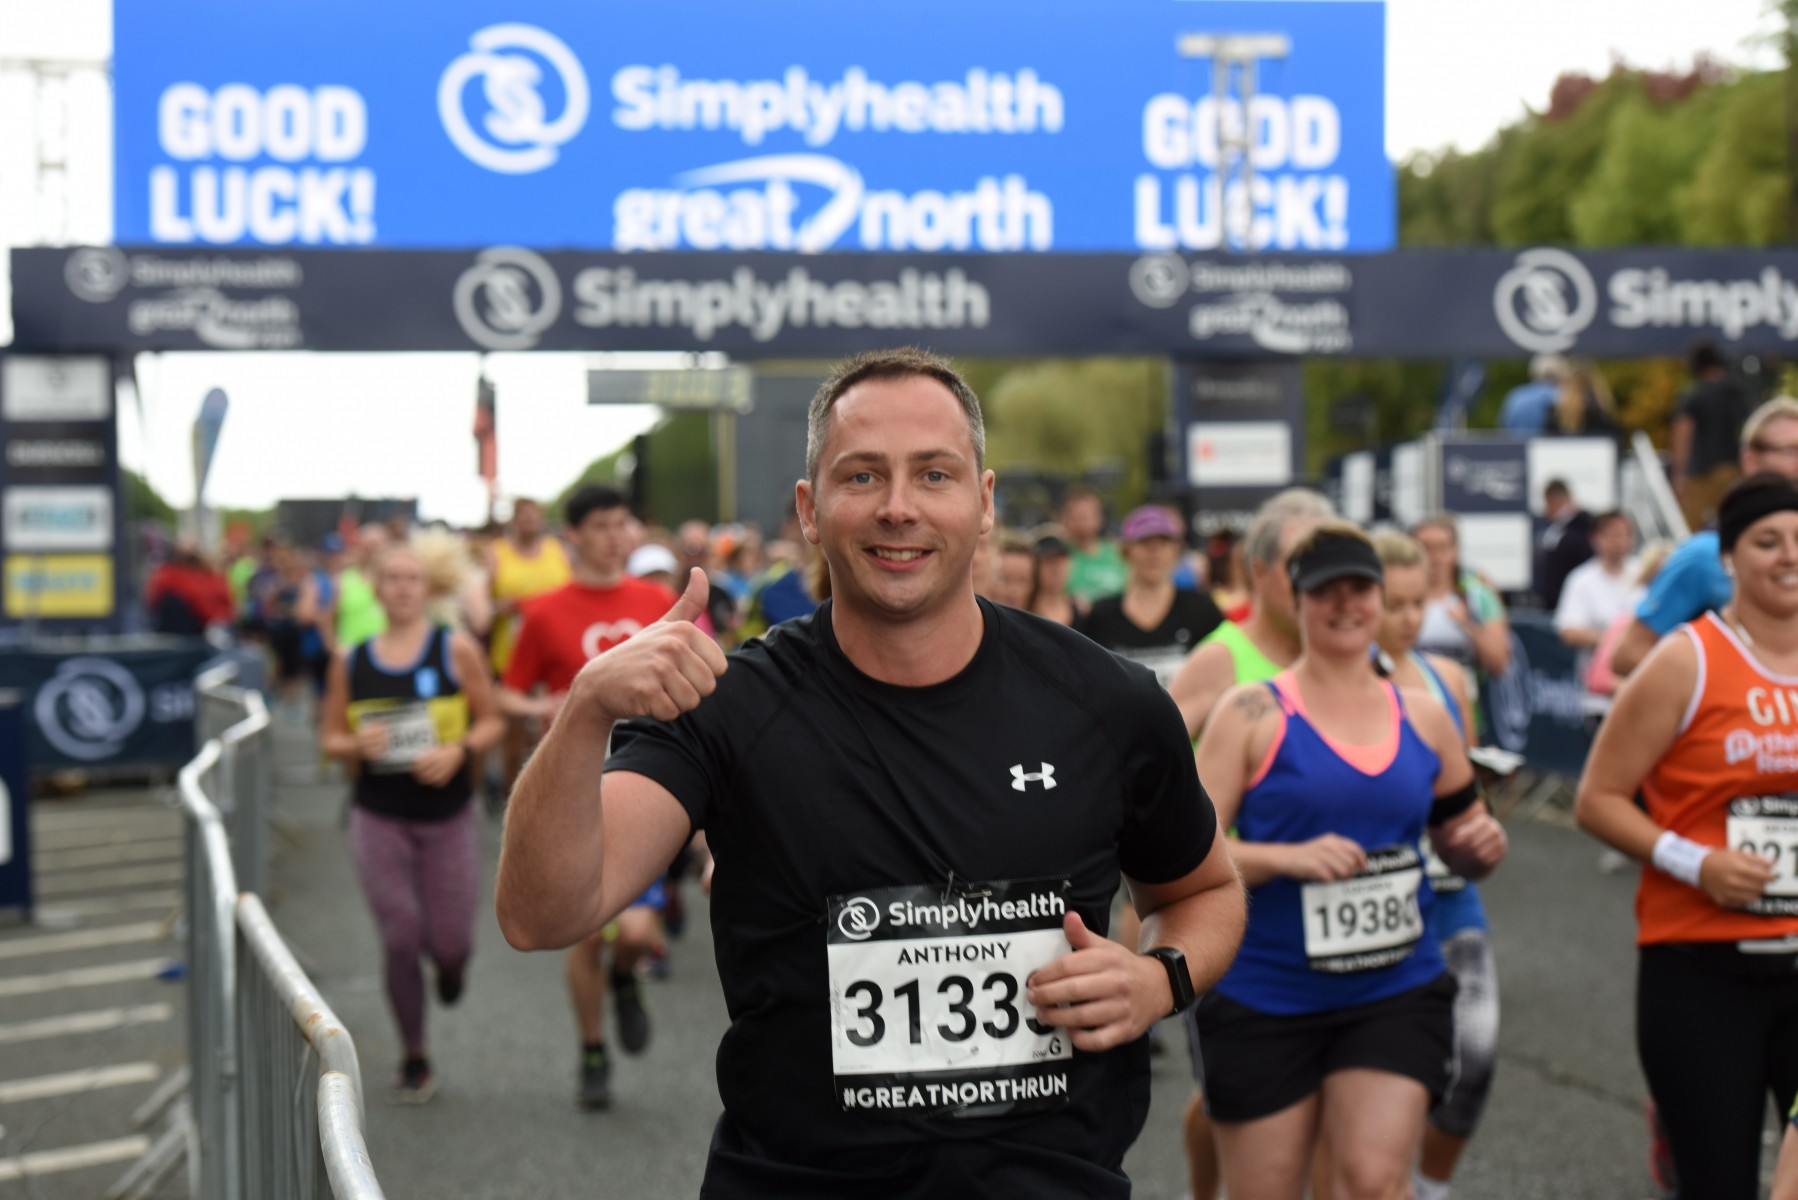 GREAT_NORTH_RUN_2017_208